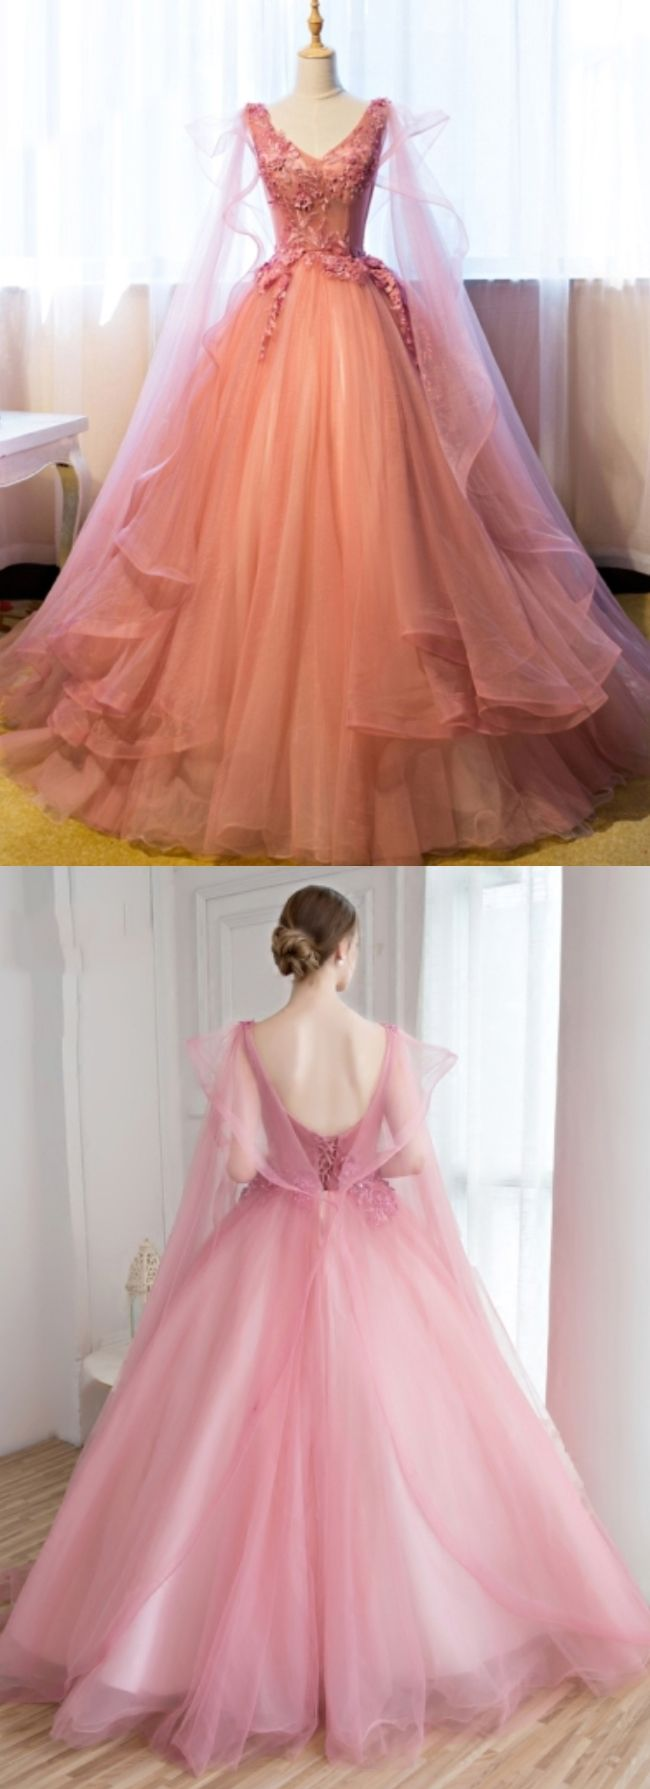 Beautiful Prom Dresses Ball Gown Floor-length V-neck Sexy Prom Dress ...